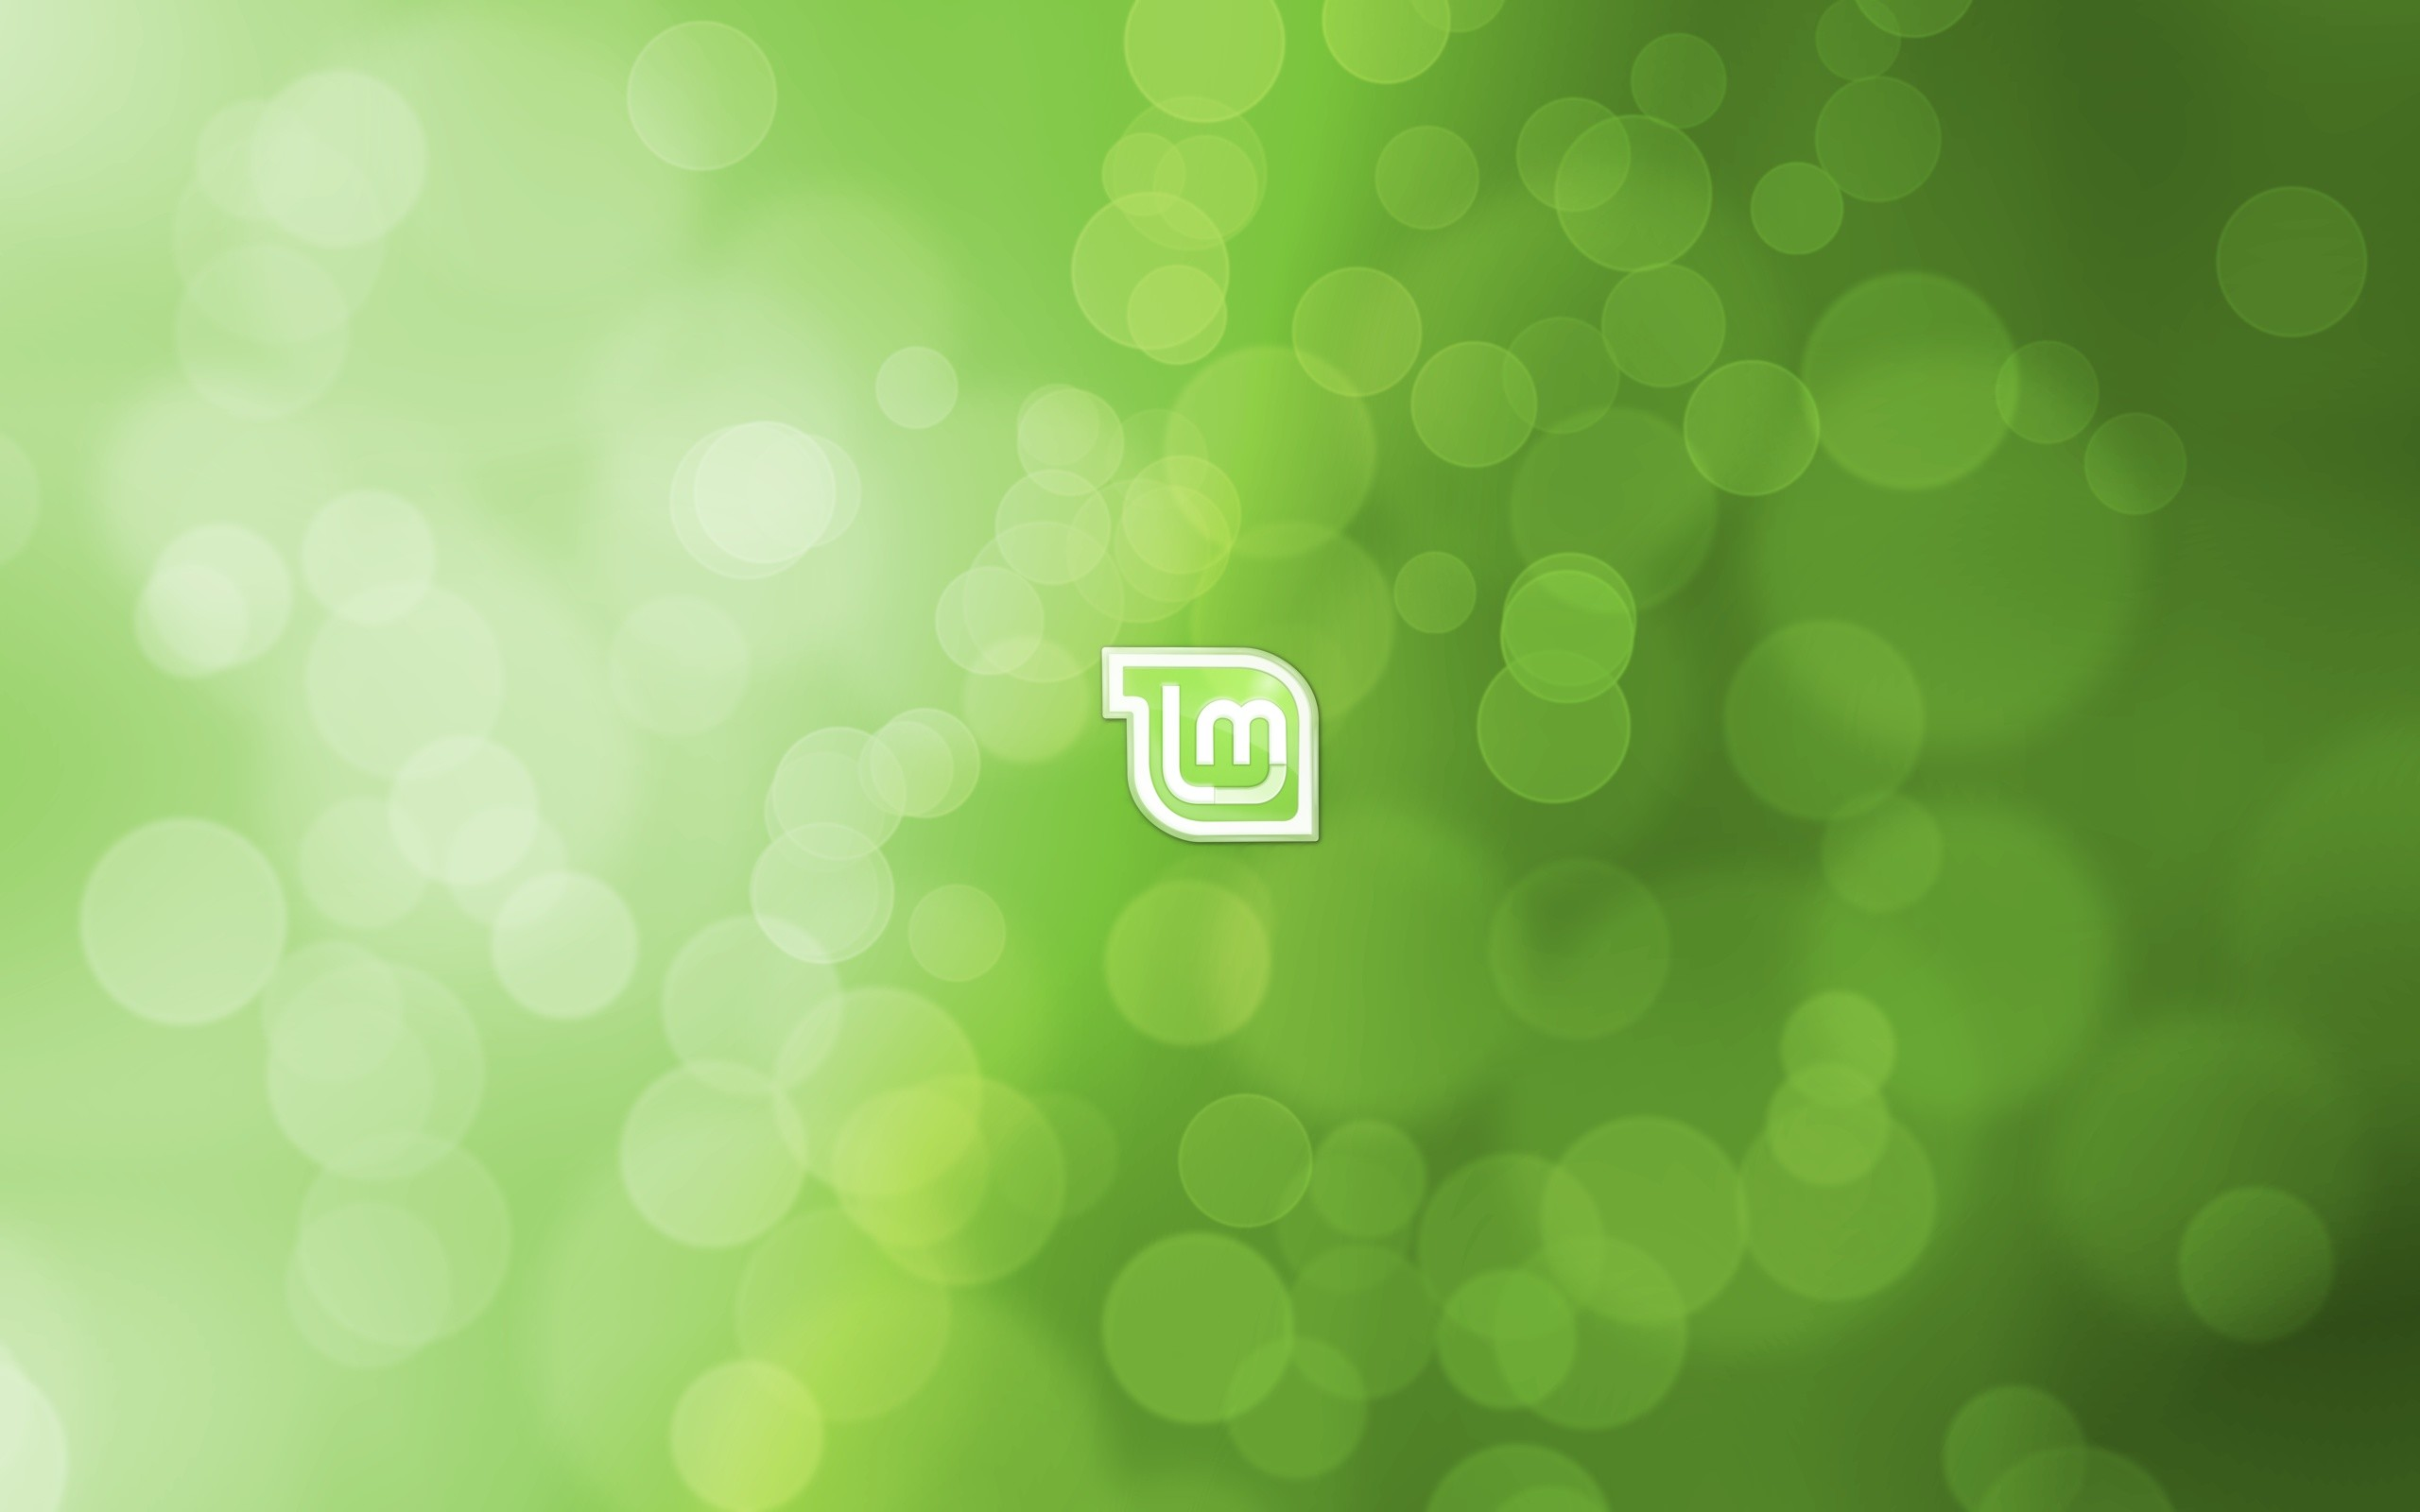 linux mint maya default wallpapers pack by omeroGD on DeviantArt 1191×670  Wallpapers Pack (33 Wallpapers) | Adorable Wallpapers | Wallpapers |  Pinterest …